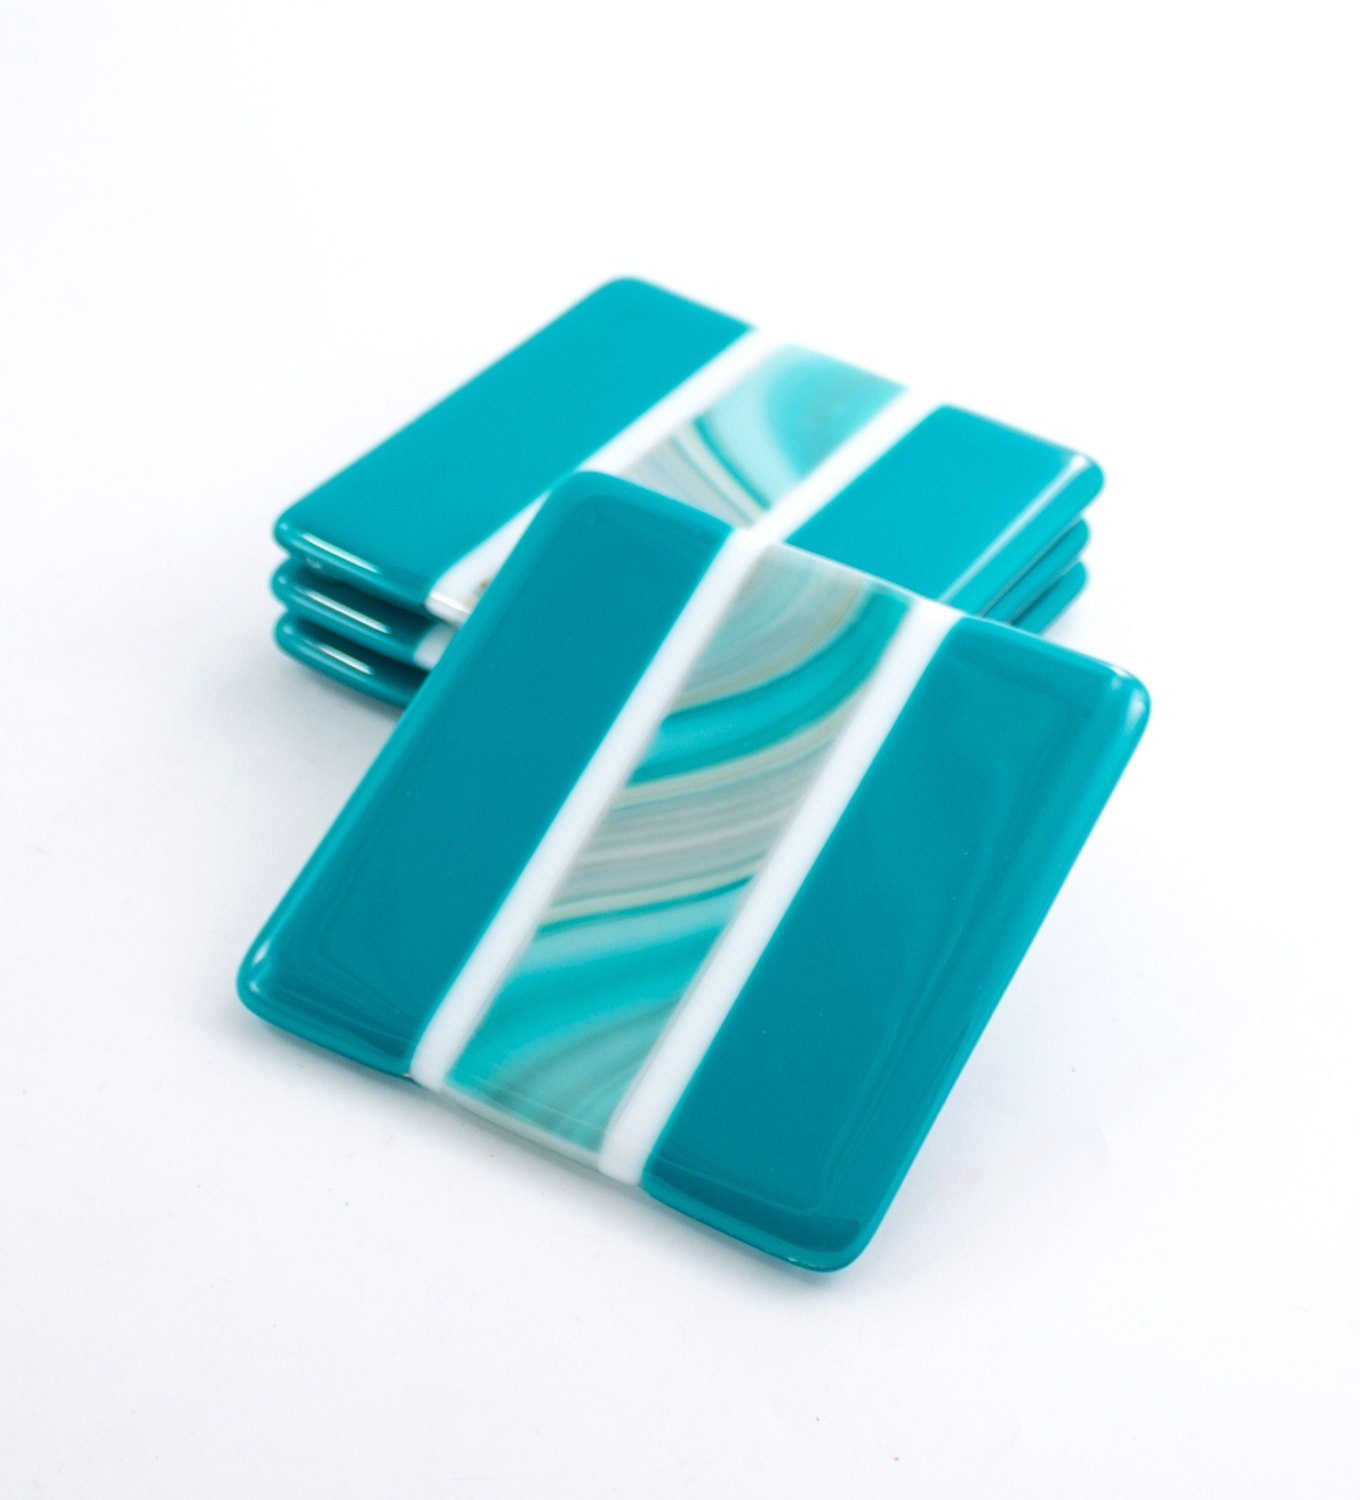 Fused Glass Drink Coasters Set Of 4 Teal Home Decor